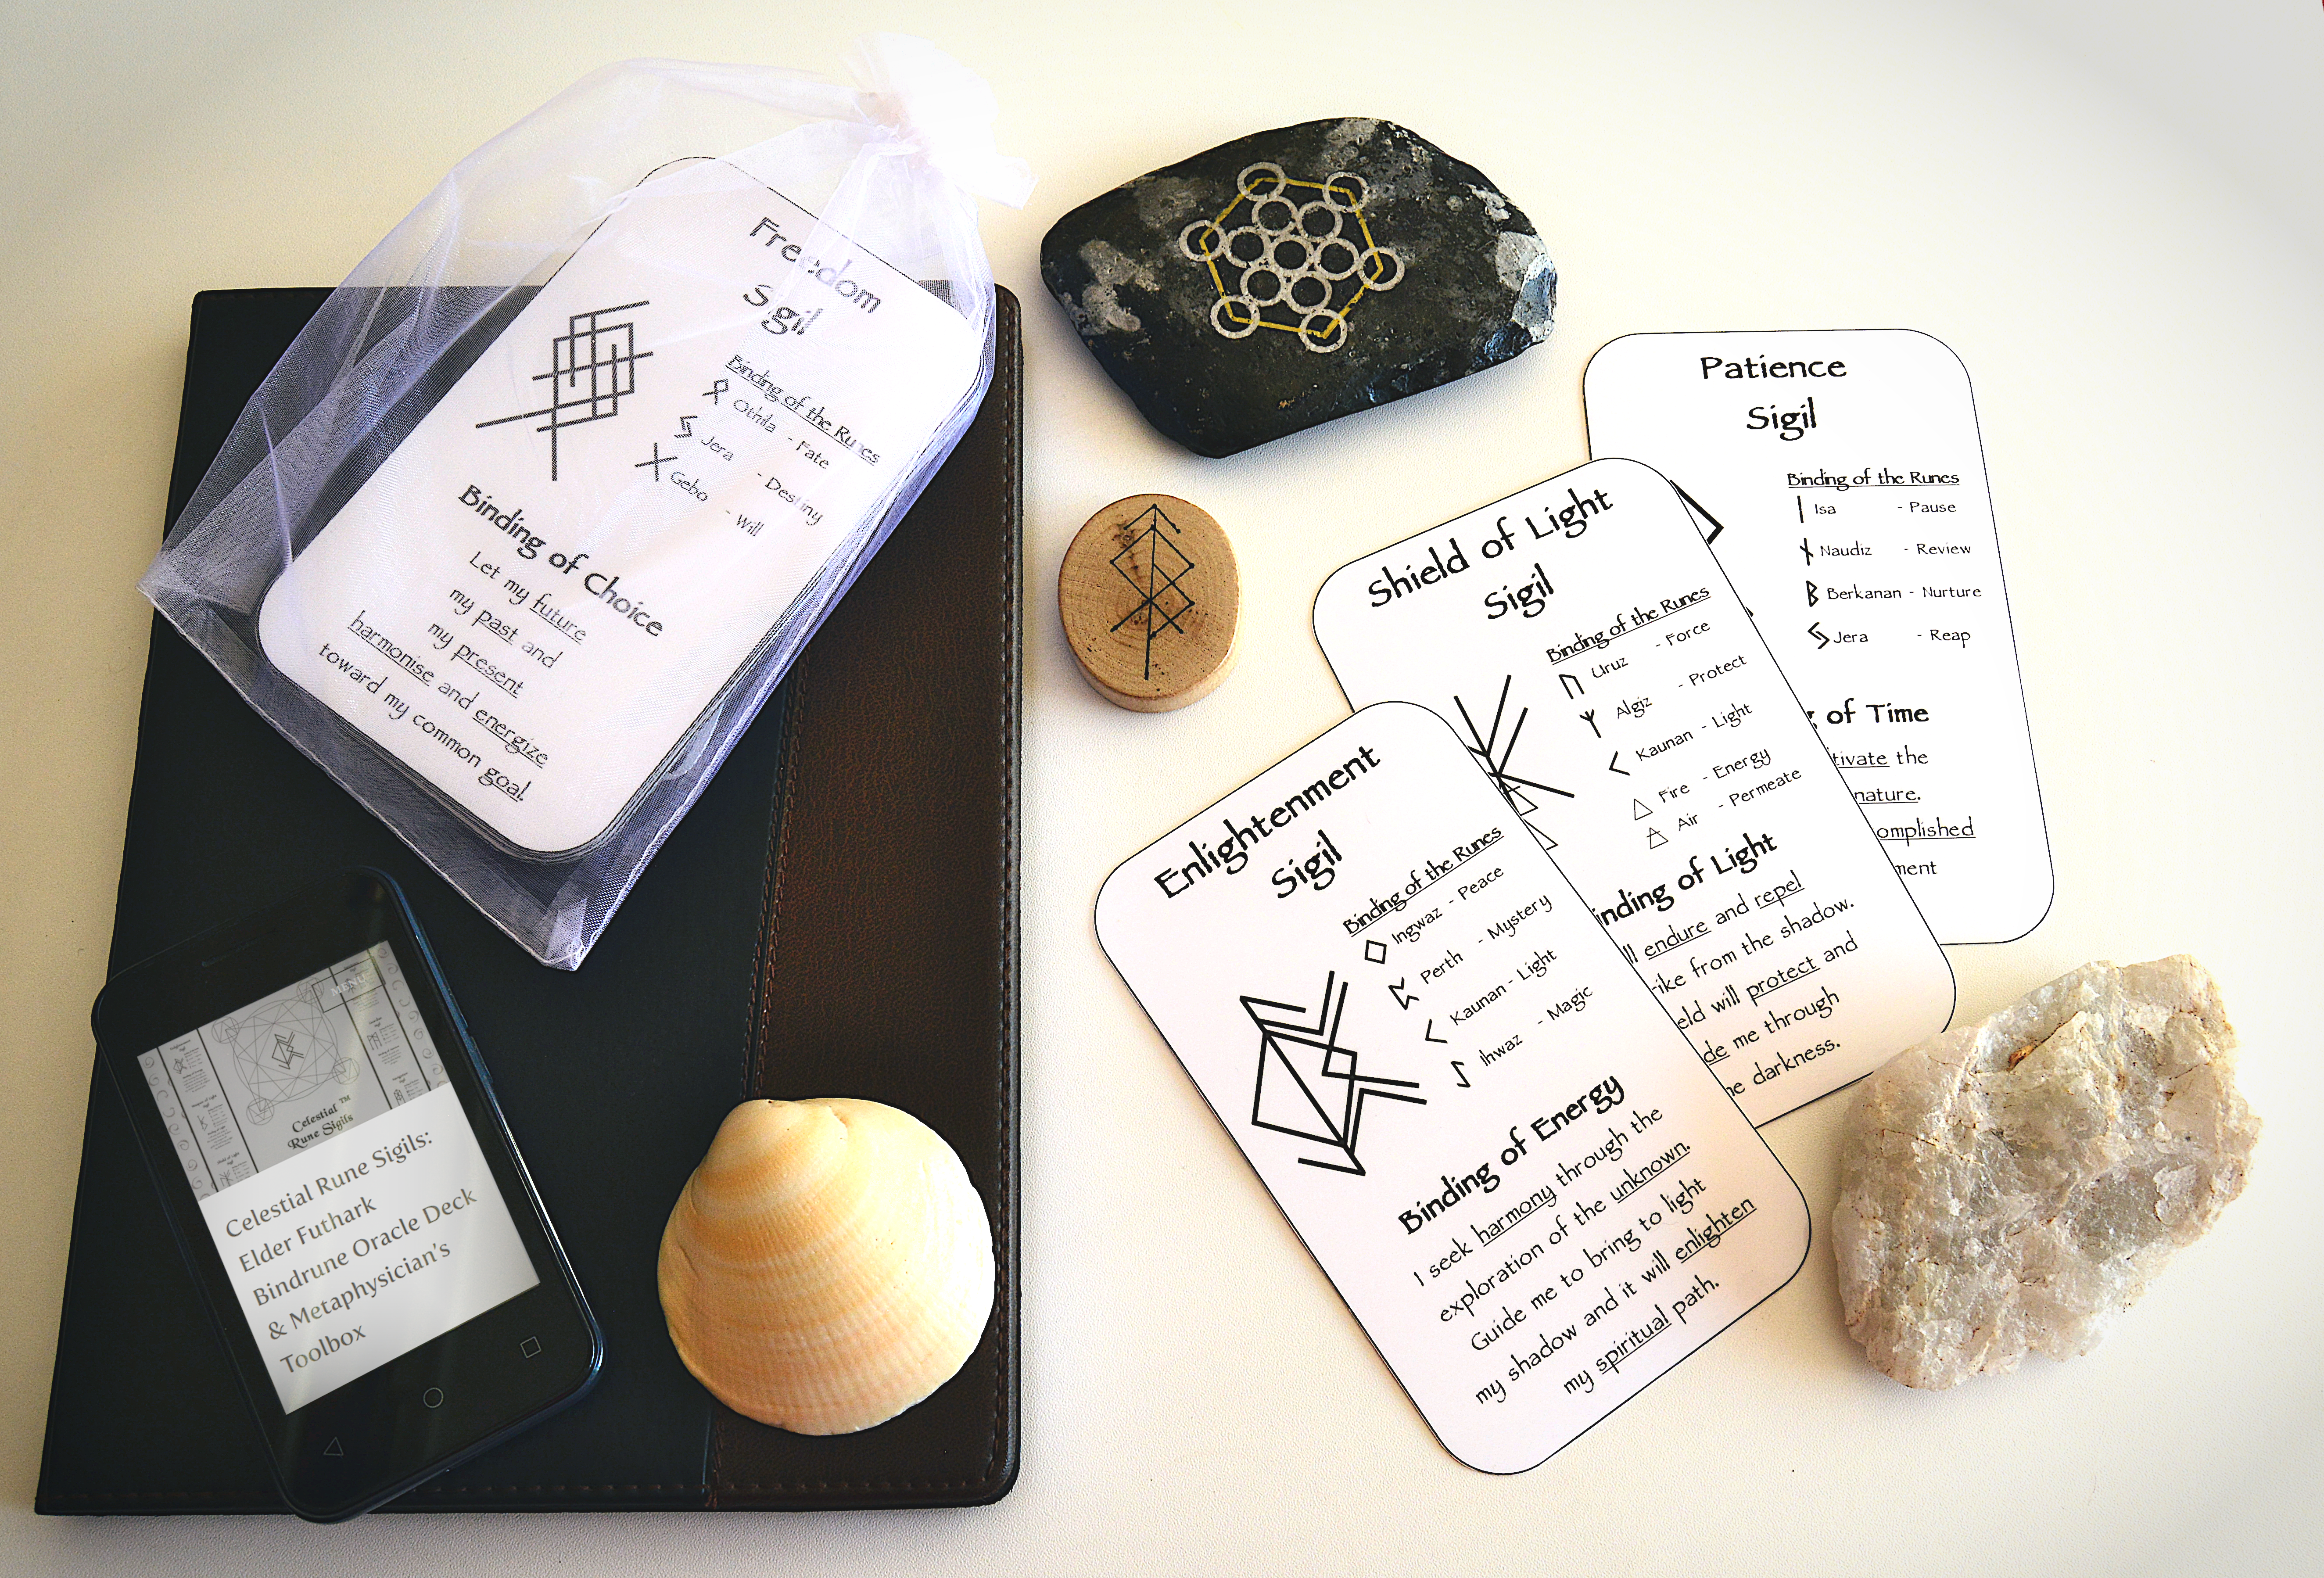 Celestial Bindrune Sigils, Cards, Real Life, Photo, Crystal, book, shell, stone, smart phone, Elder, Futhark, bindrune, Anglo, Saxon, Frisian, Viking, Norse, Germanic, Scandinavian, Divination, Oracle, Cards, Metaphysician, Toolbox, Magick, Galdur, Cards Only Option, Bind, Rune, Make Playing Cards, All Natural Spirit